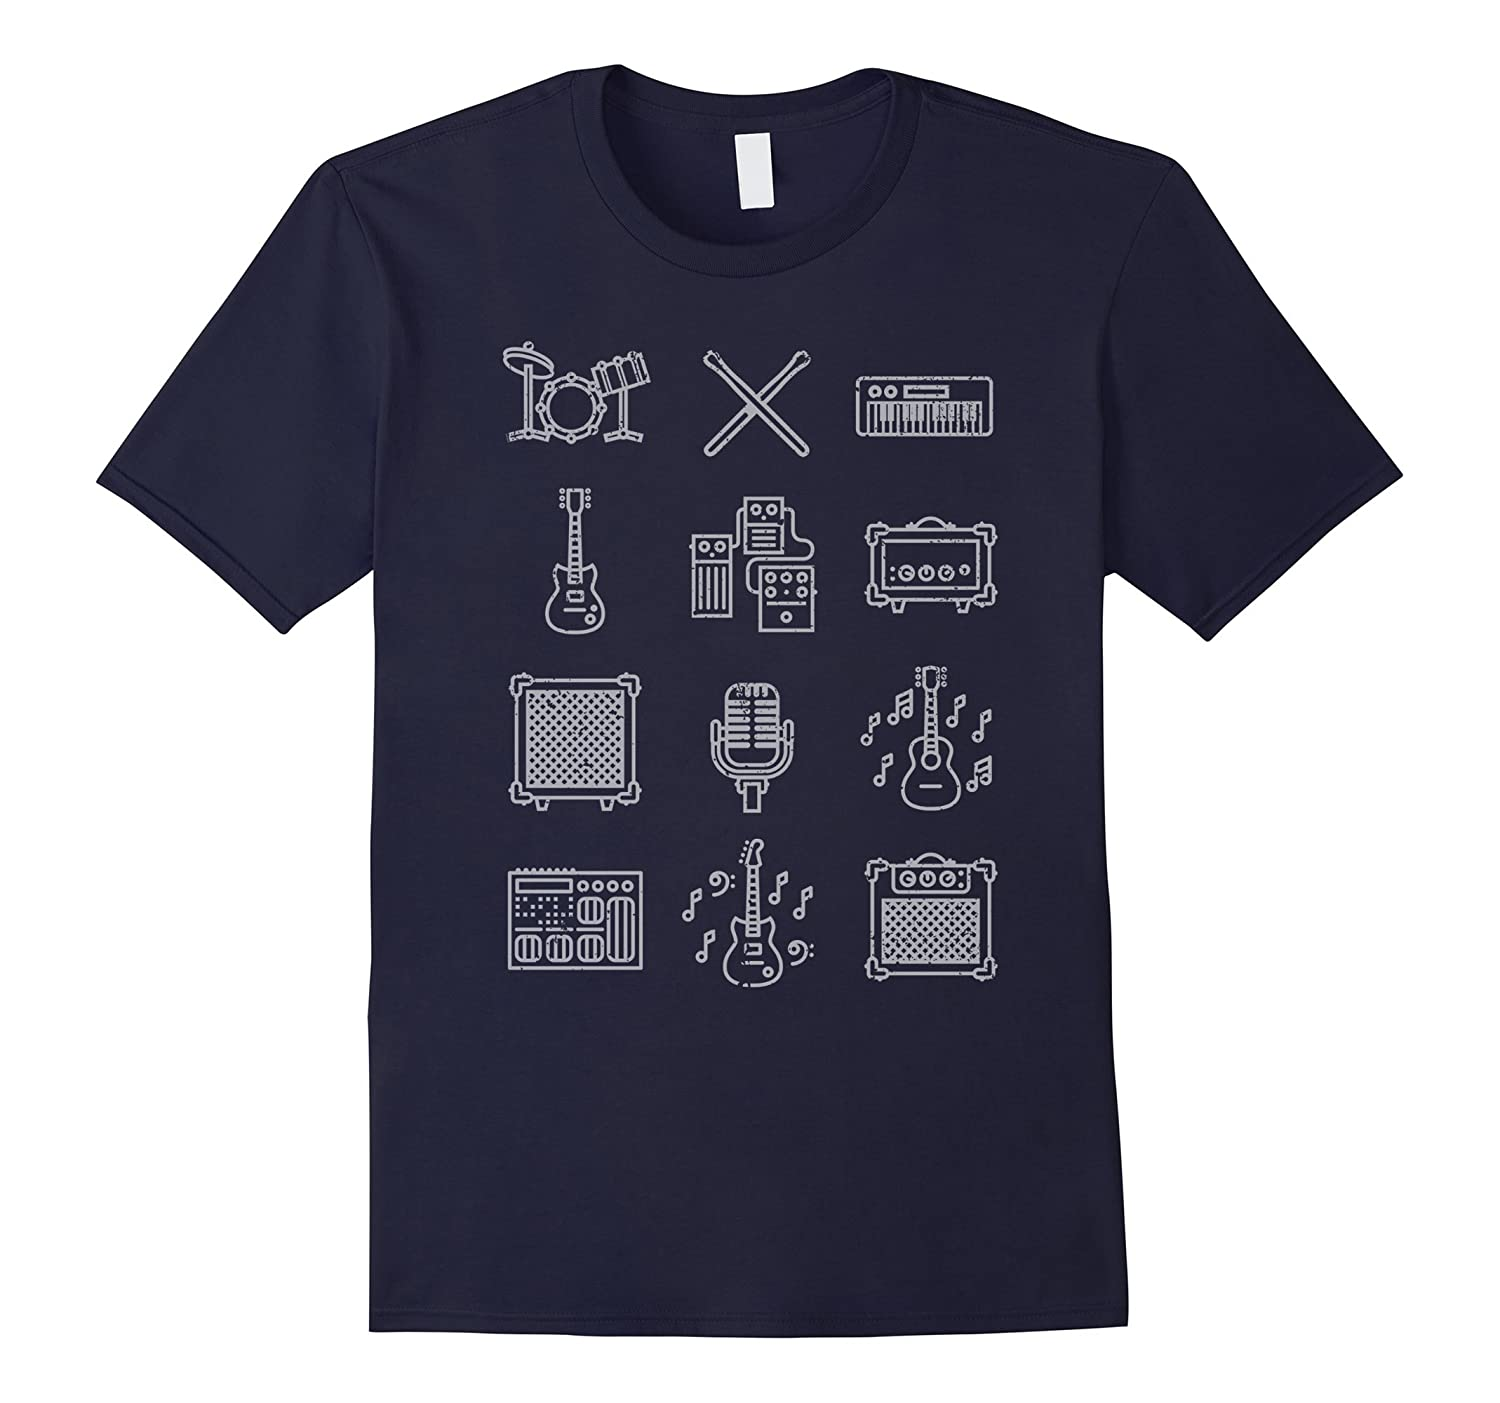 Musical Instrument Icons T-Shirt Musically Shirt Vintage